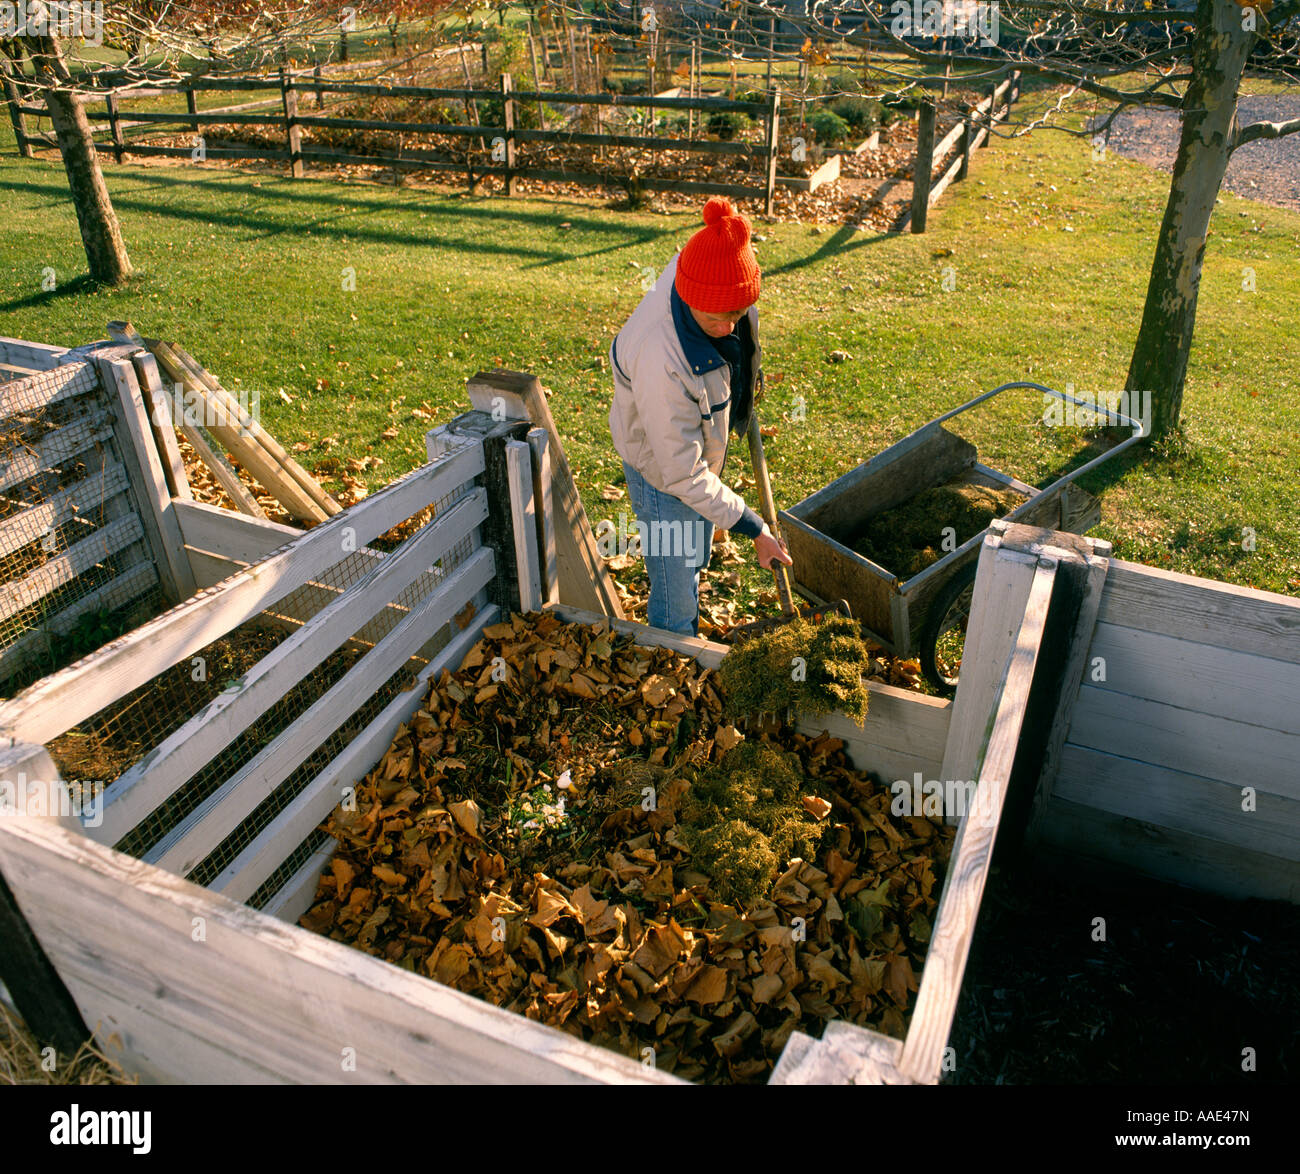 ADDING GRASS CLIPPINGS TO COMPOST PILE PENNSYLVANIA - Stock Image